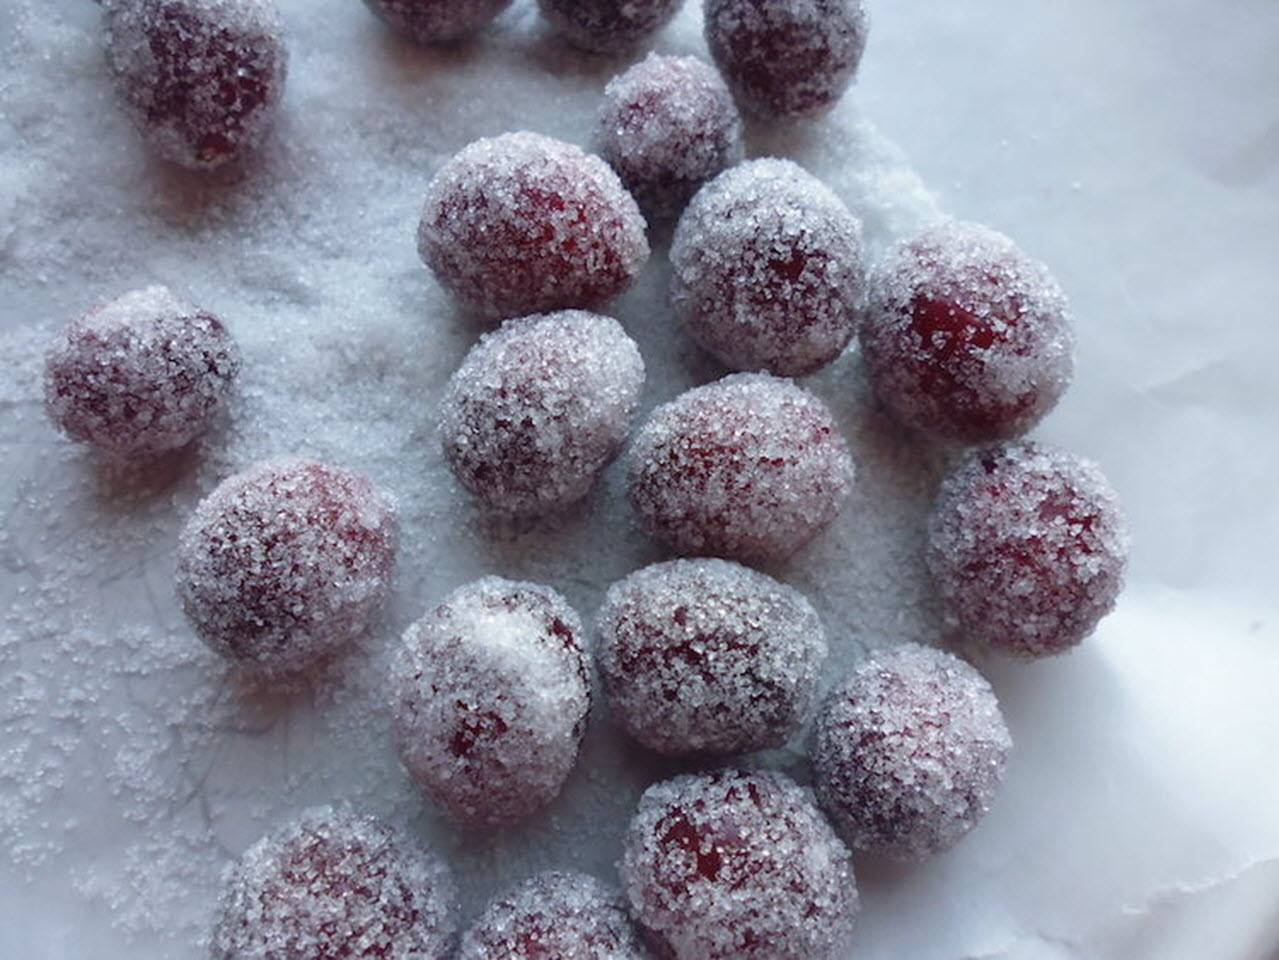 Sugared Cranberries nch